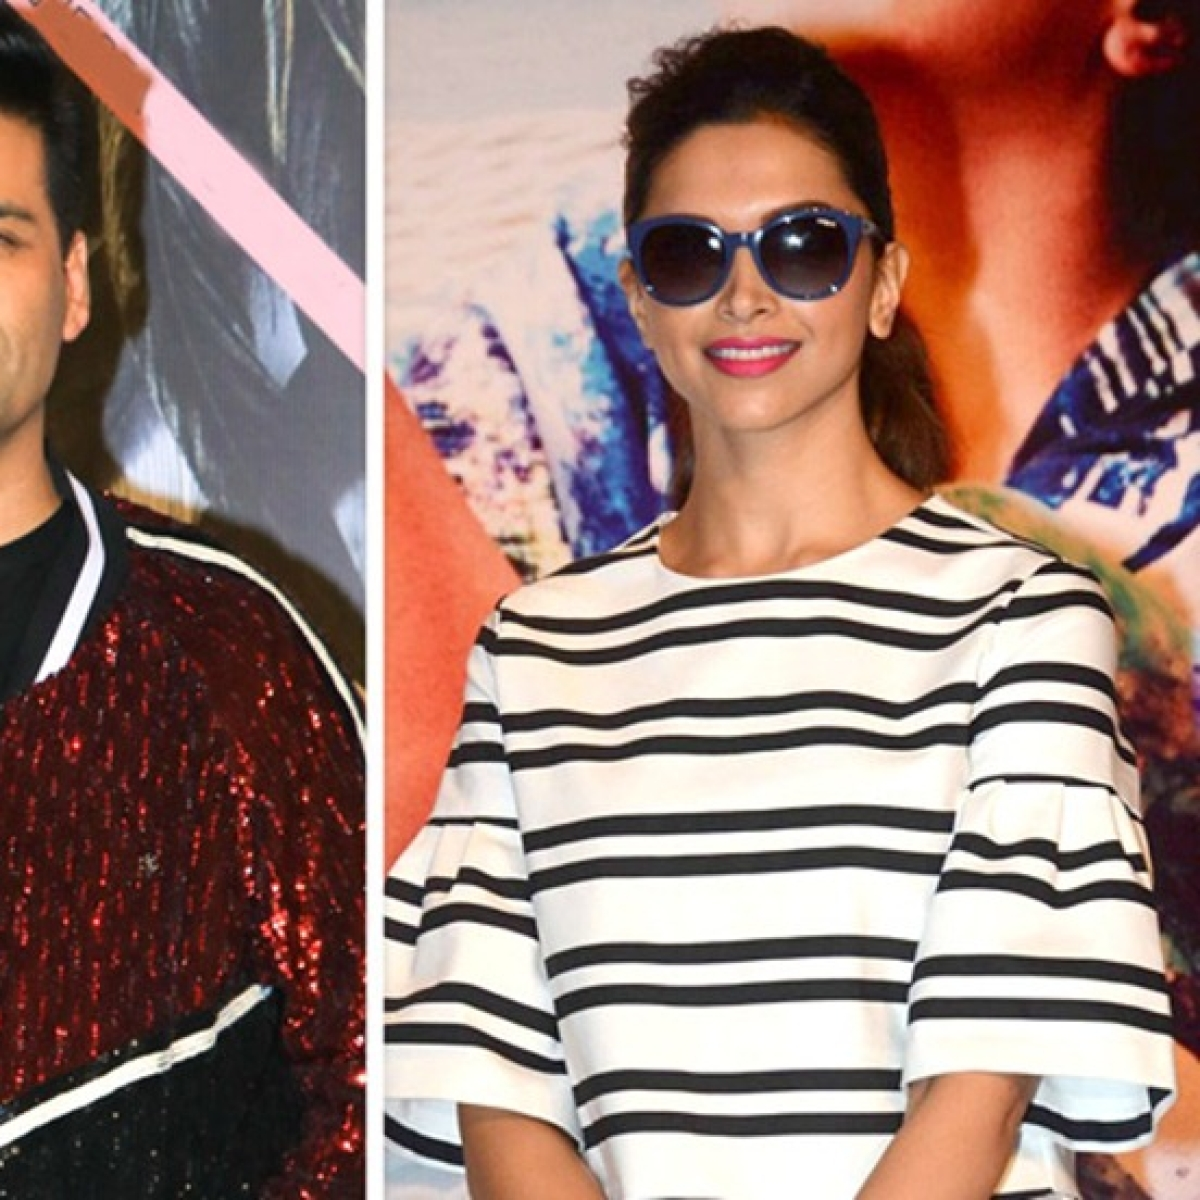 Scoop: Karan Johar signs Deepika Padukone again